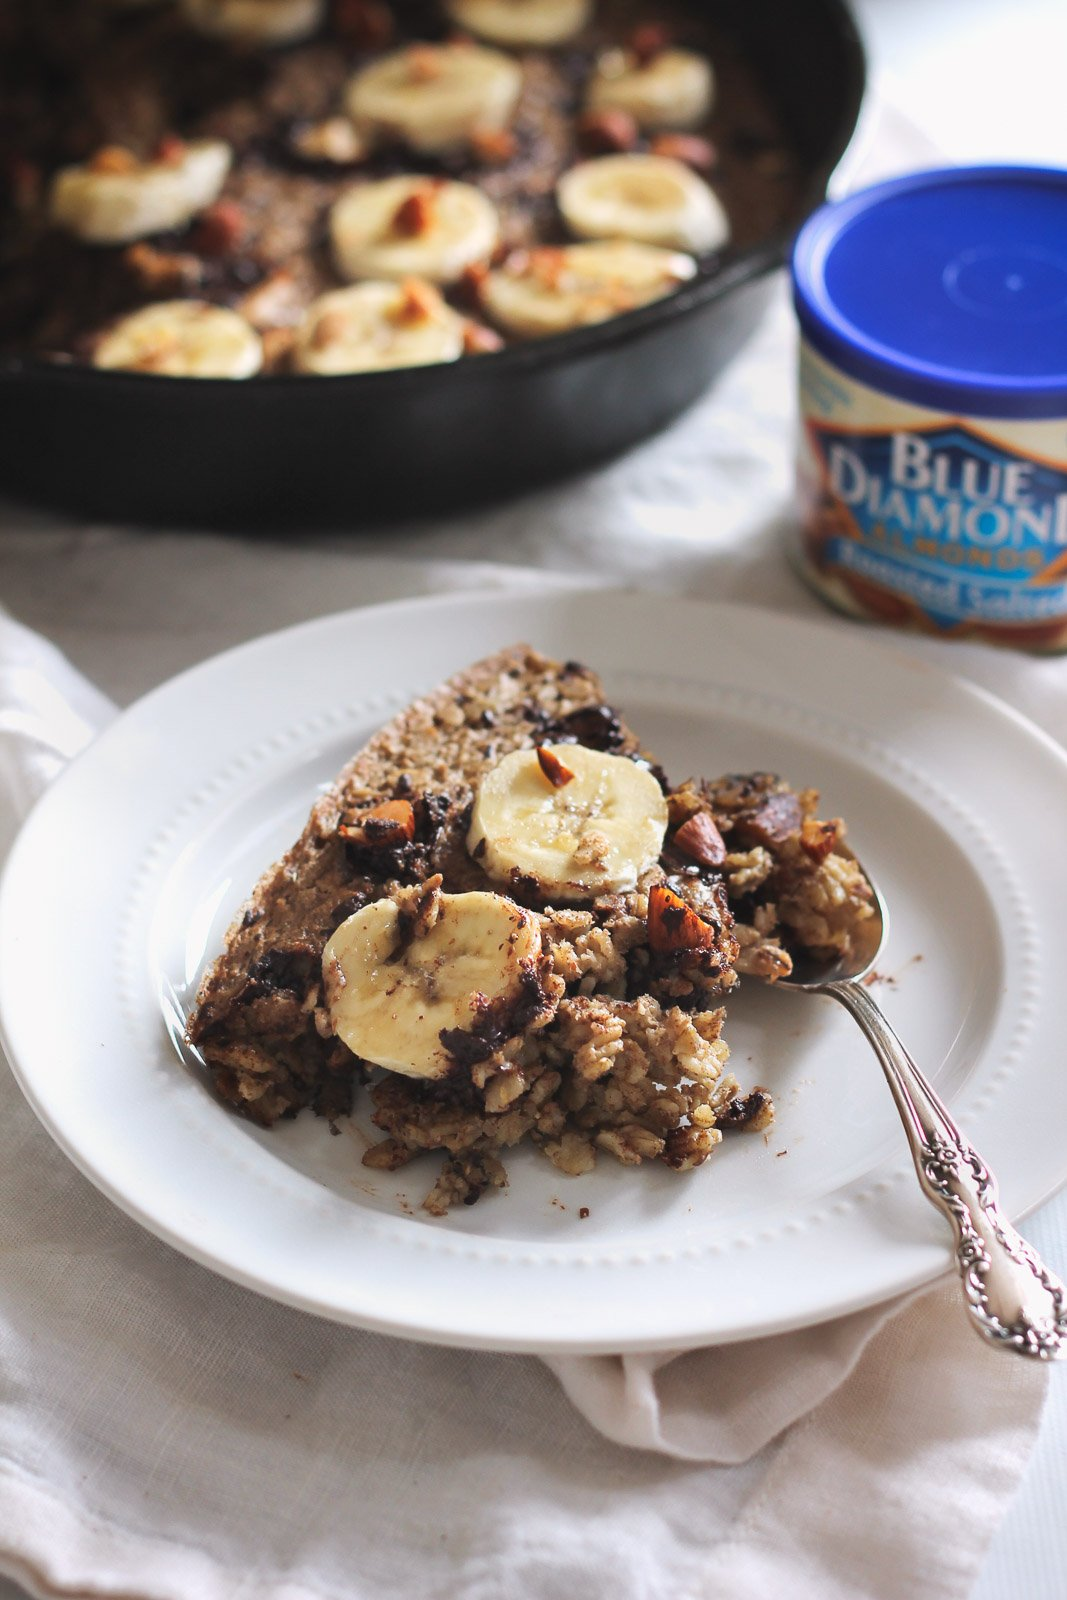 banana baked oatmeal on a plate with a spoon